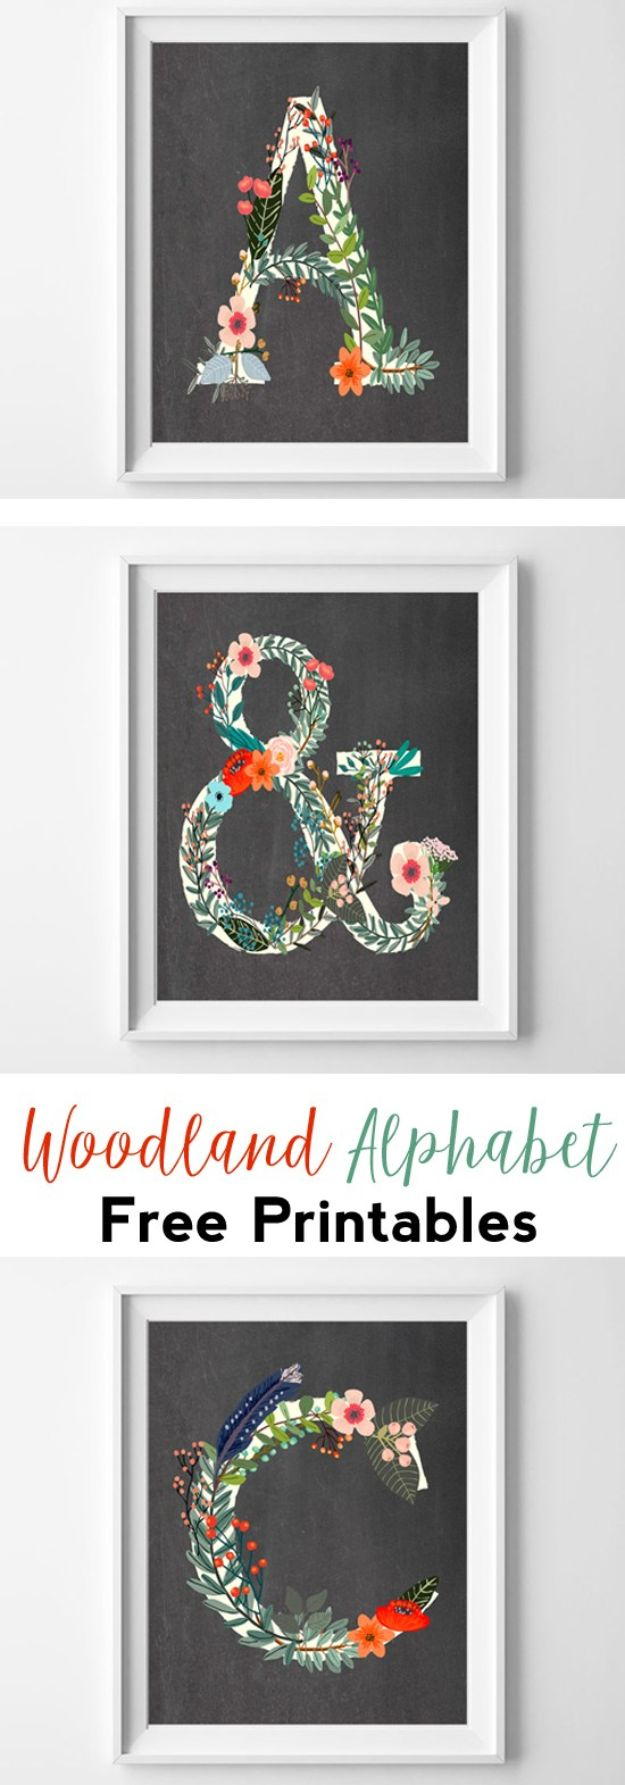 DIY Nursery Decor - Woodland Alphabet Free Printables - Easy Projects to Make for Baby Room - Decorations for Boy and Girl Rooms, Unisex, Minimalist and Modern Nurseries and Rustic, Farmhouse Style - All White, Pink, Blue, Yellow and Green - Cribs, Bedding, Wall Art and Hangings, Rocking Chairs, Pillows, Changing Tables, Storage and Bassinet for Baby #diybaby #babygifts #nurserydecor